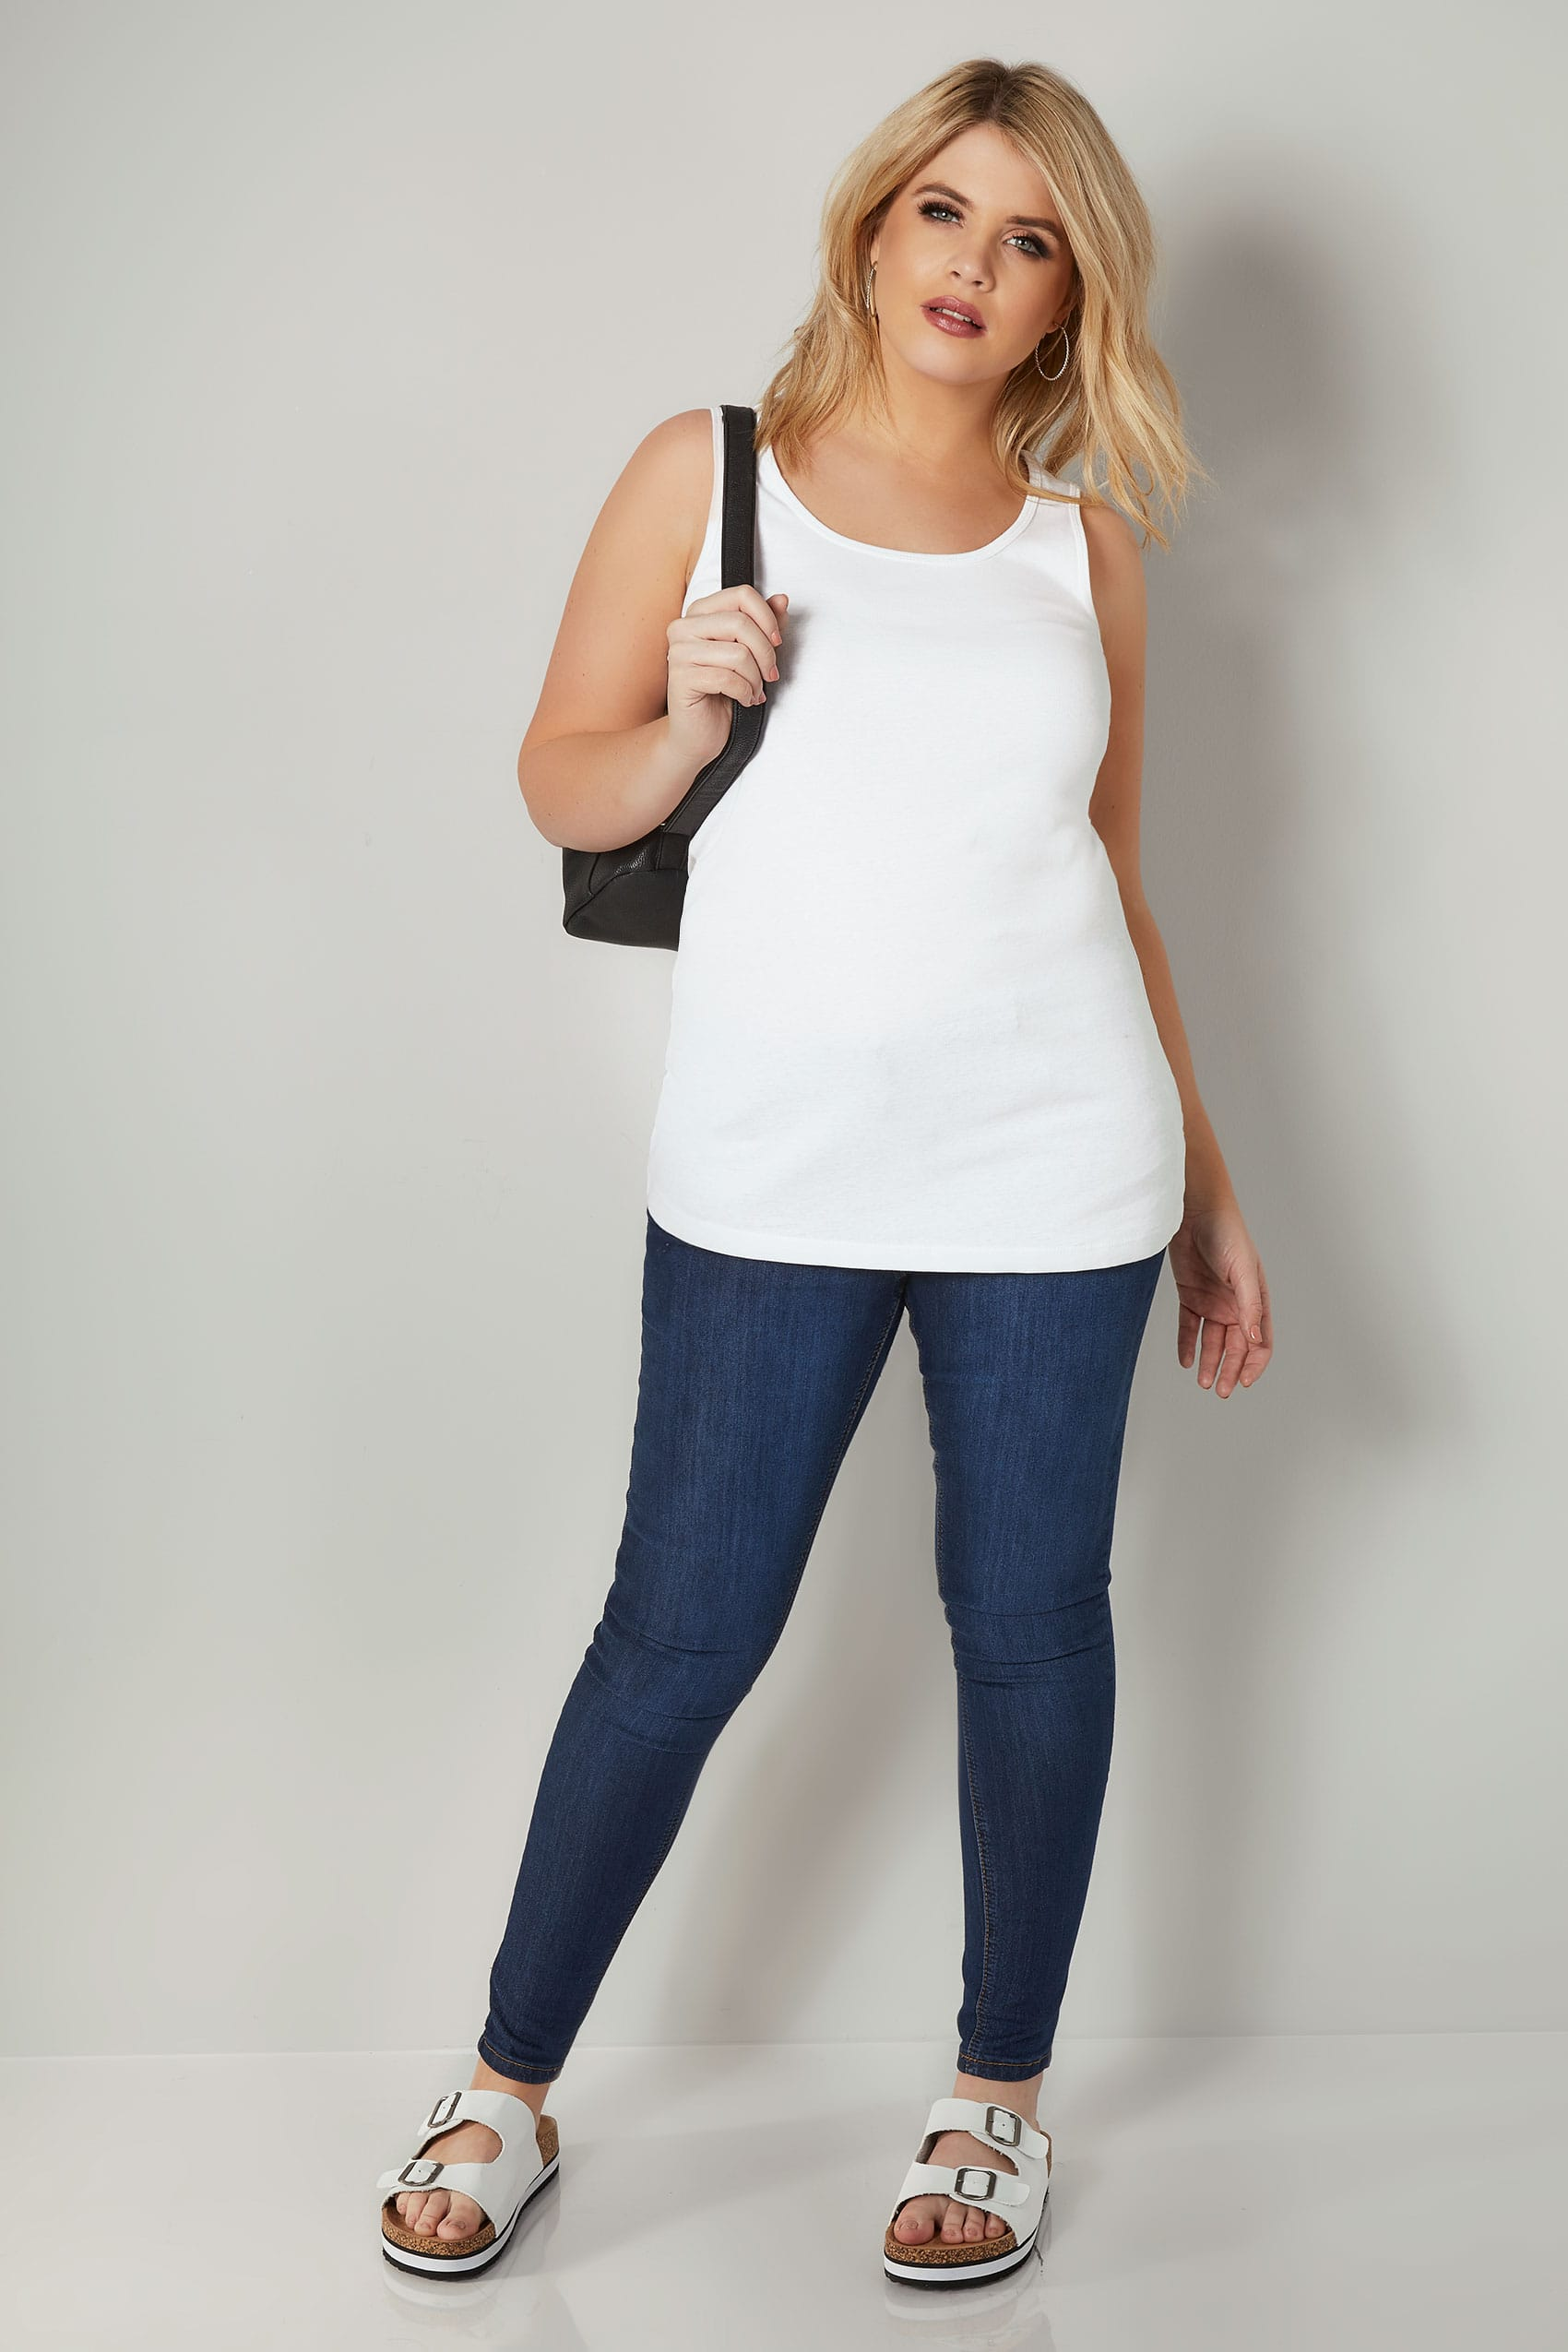 Rooms: White Cotton Vest Top Plus Size 16 To 36